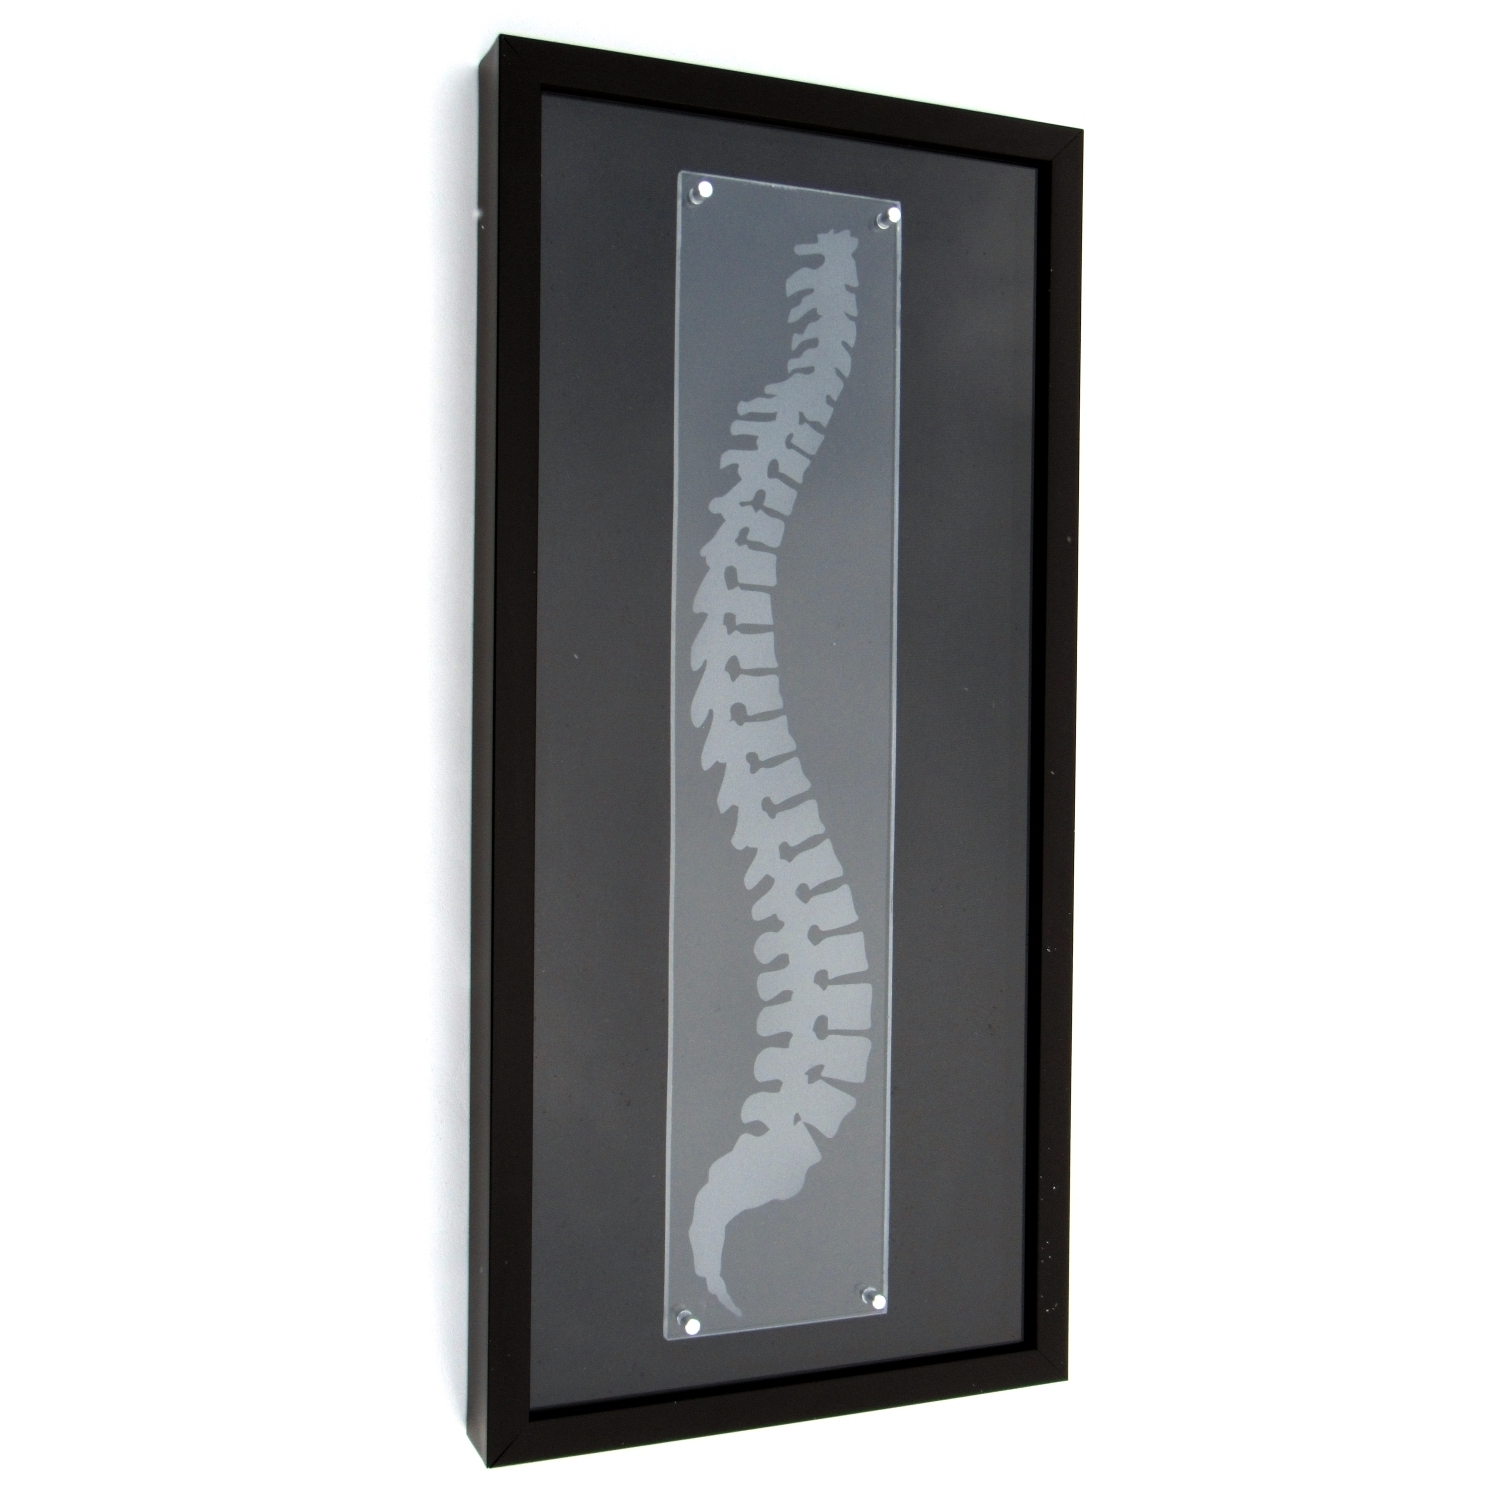 Chiropractic Art – Spine Shadowbox – Chiropracticart Within Current Chiropractic Wall Art (View 7 of 15)